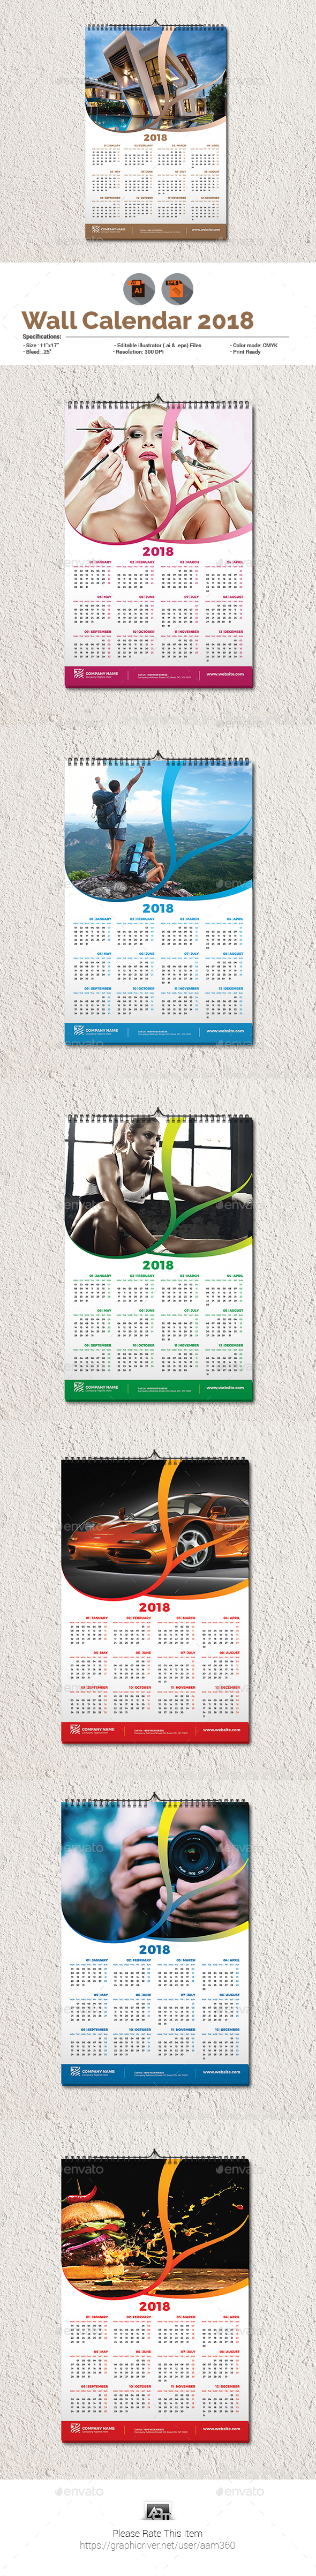 Multipurpose Wall Calendar Template - Calendars Stationery